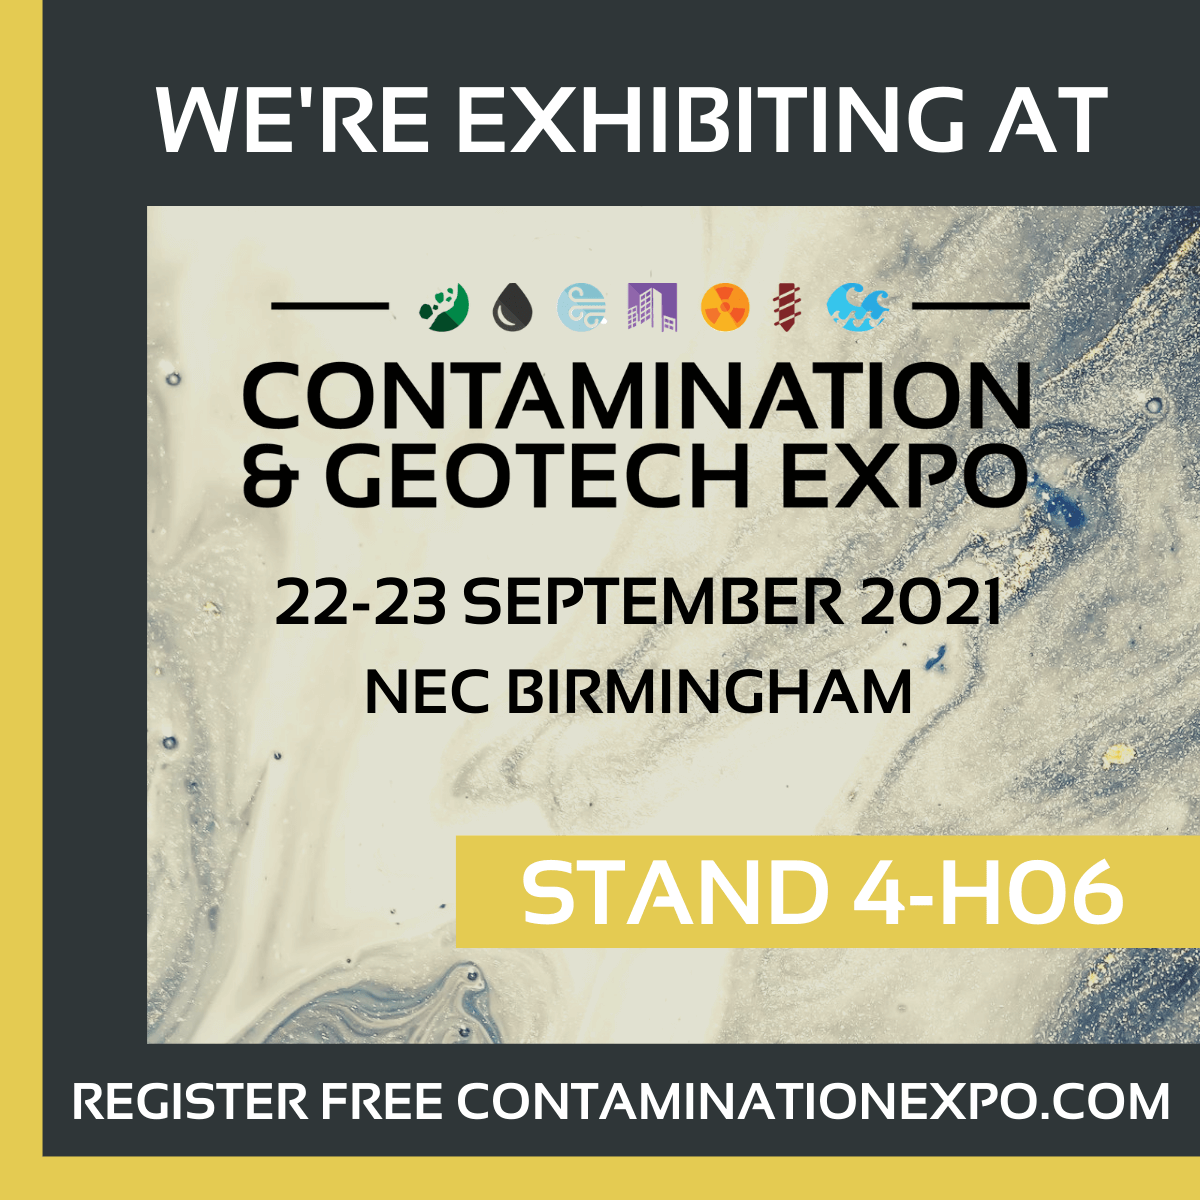 Visit us at the Contamination & Geotech Expo - 22 & 23 September 2021